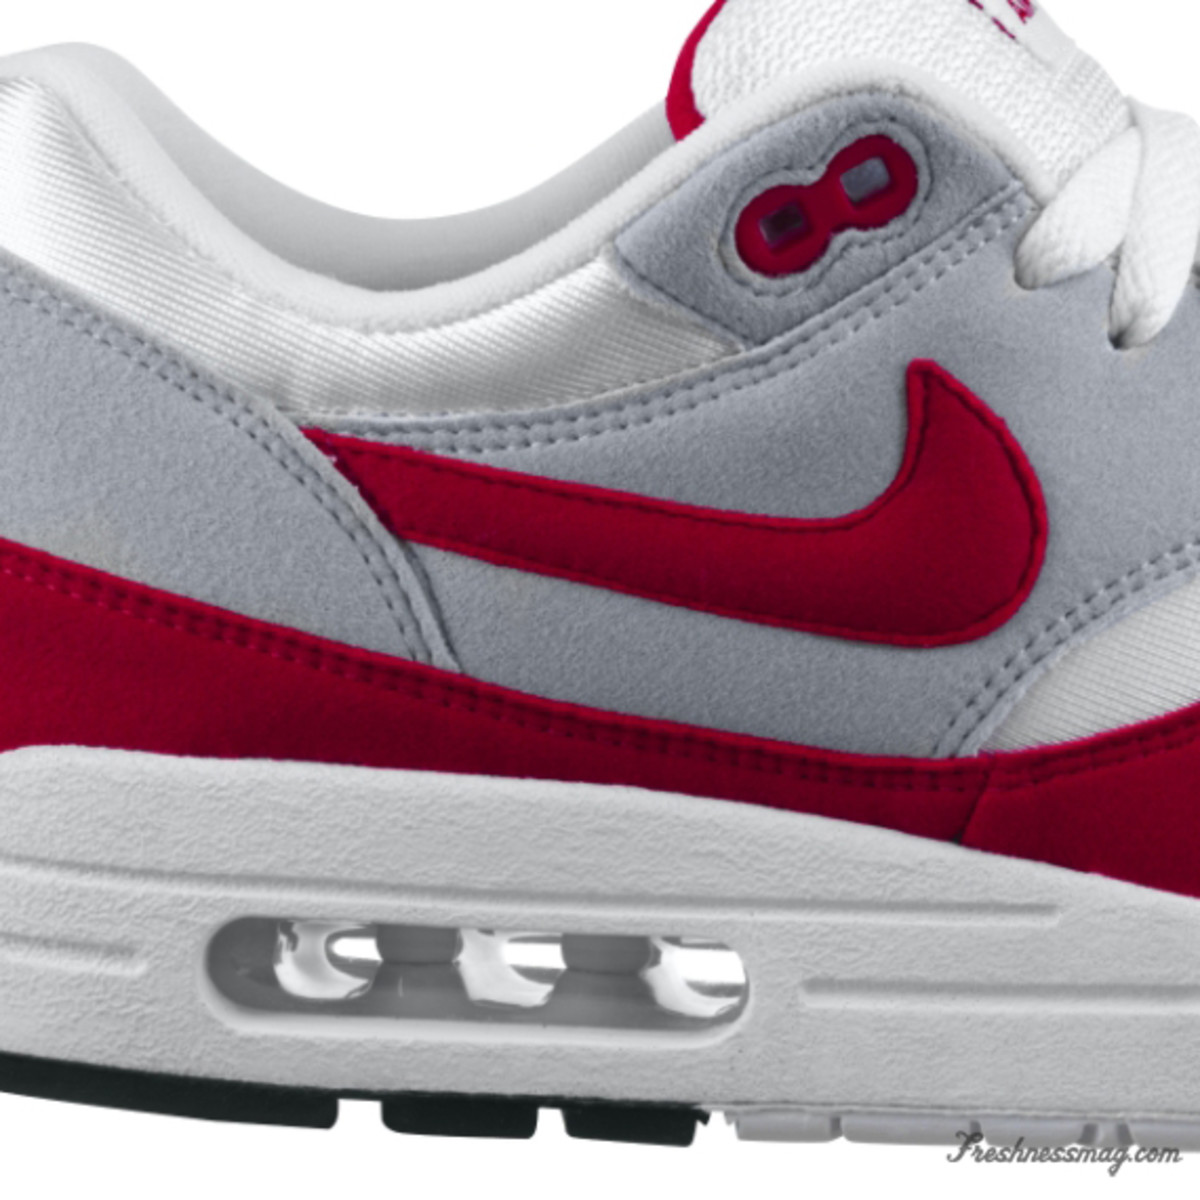 nike-air-max-1-sport-red-378830-161-04